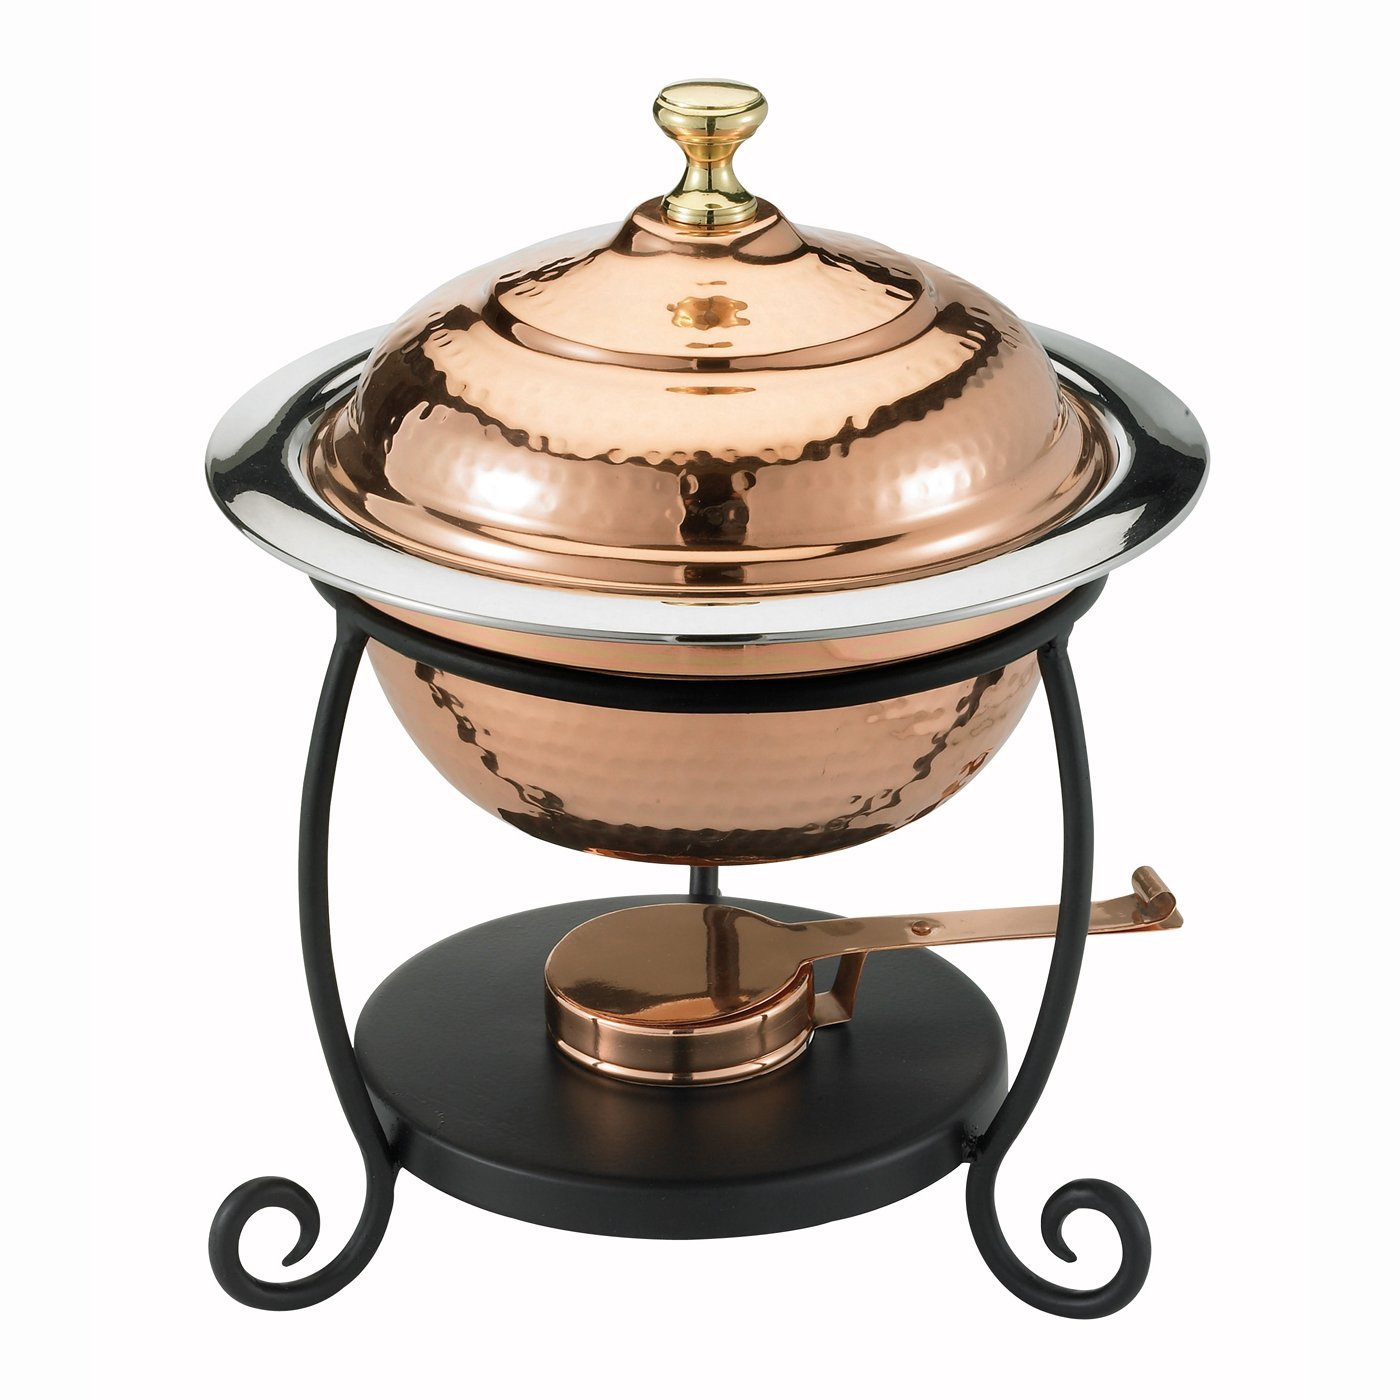 Old Dutch 890 Round Décor Copper Over Stainless Steel Chafing Dish, 1-3/4-Quart, 10 by 12-1/4-Inch